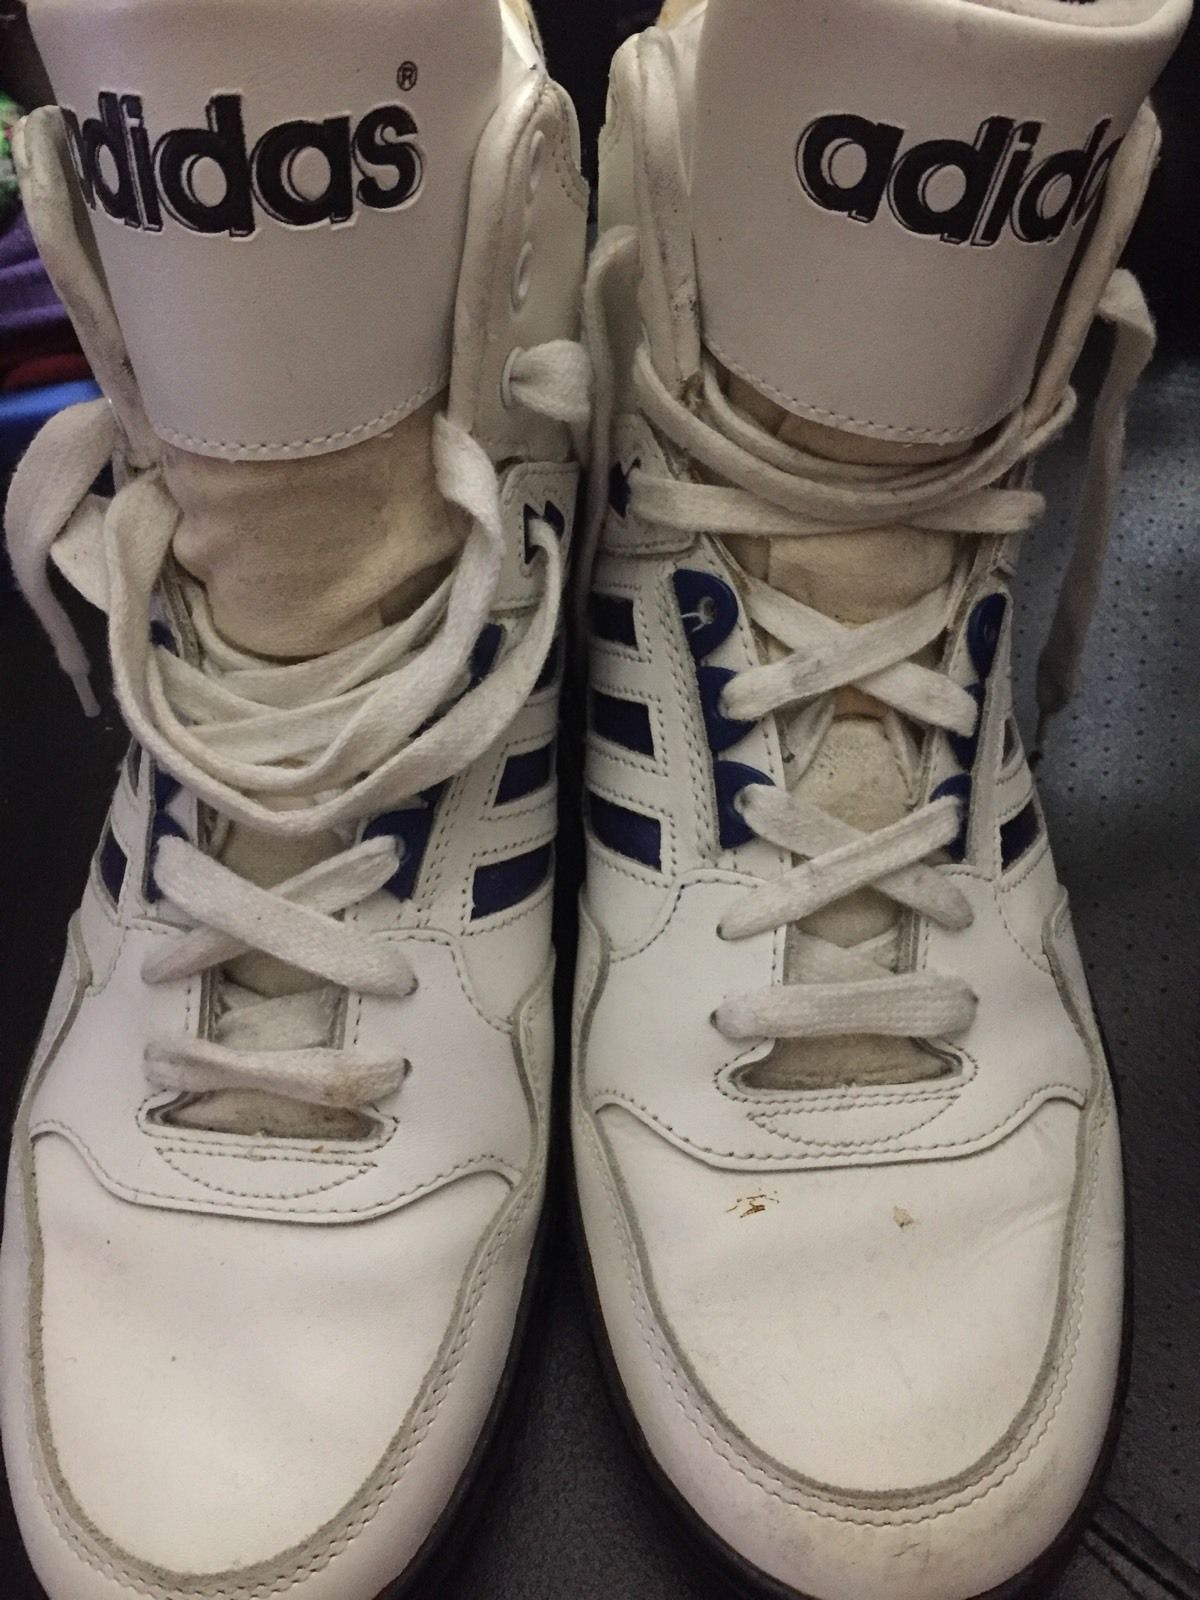 b4c0f6d8bdf40b Vintage Adidas High Top Sneakers in Clothing